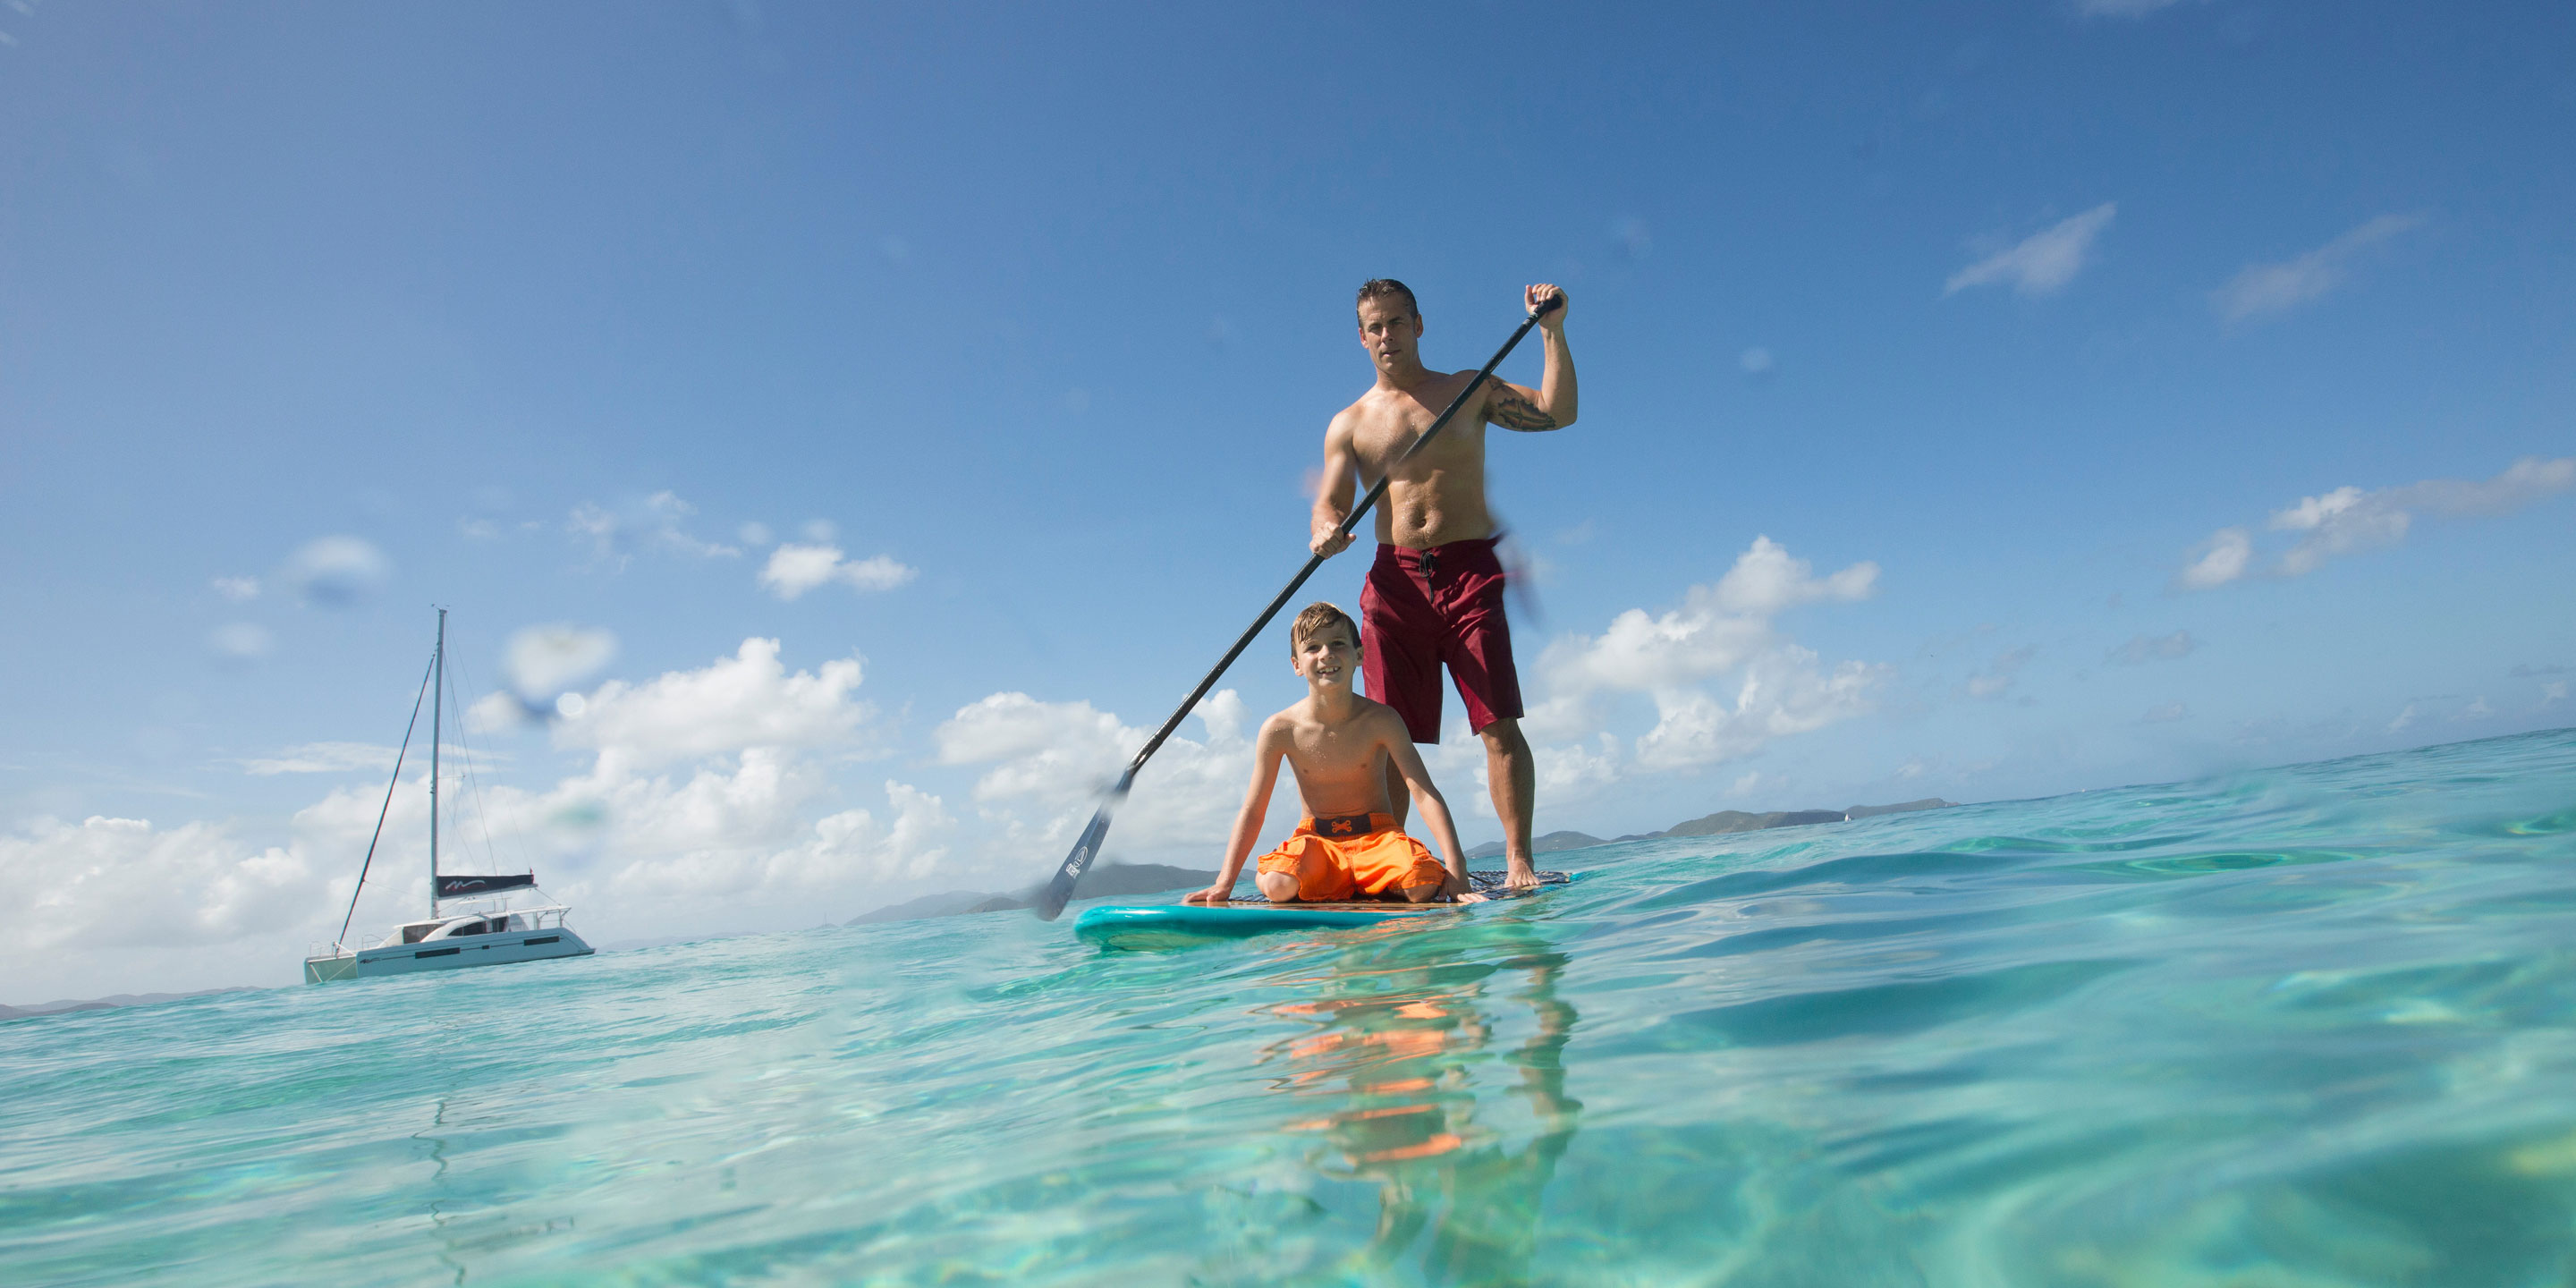 father-son-paddleboarding-bvi-2880x1440-web.jpg